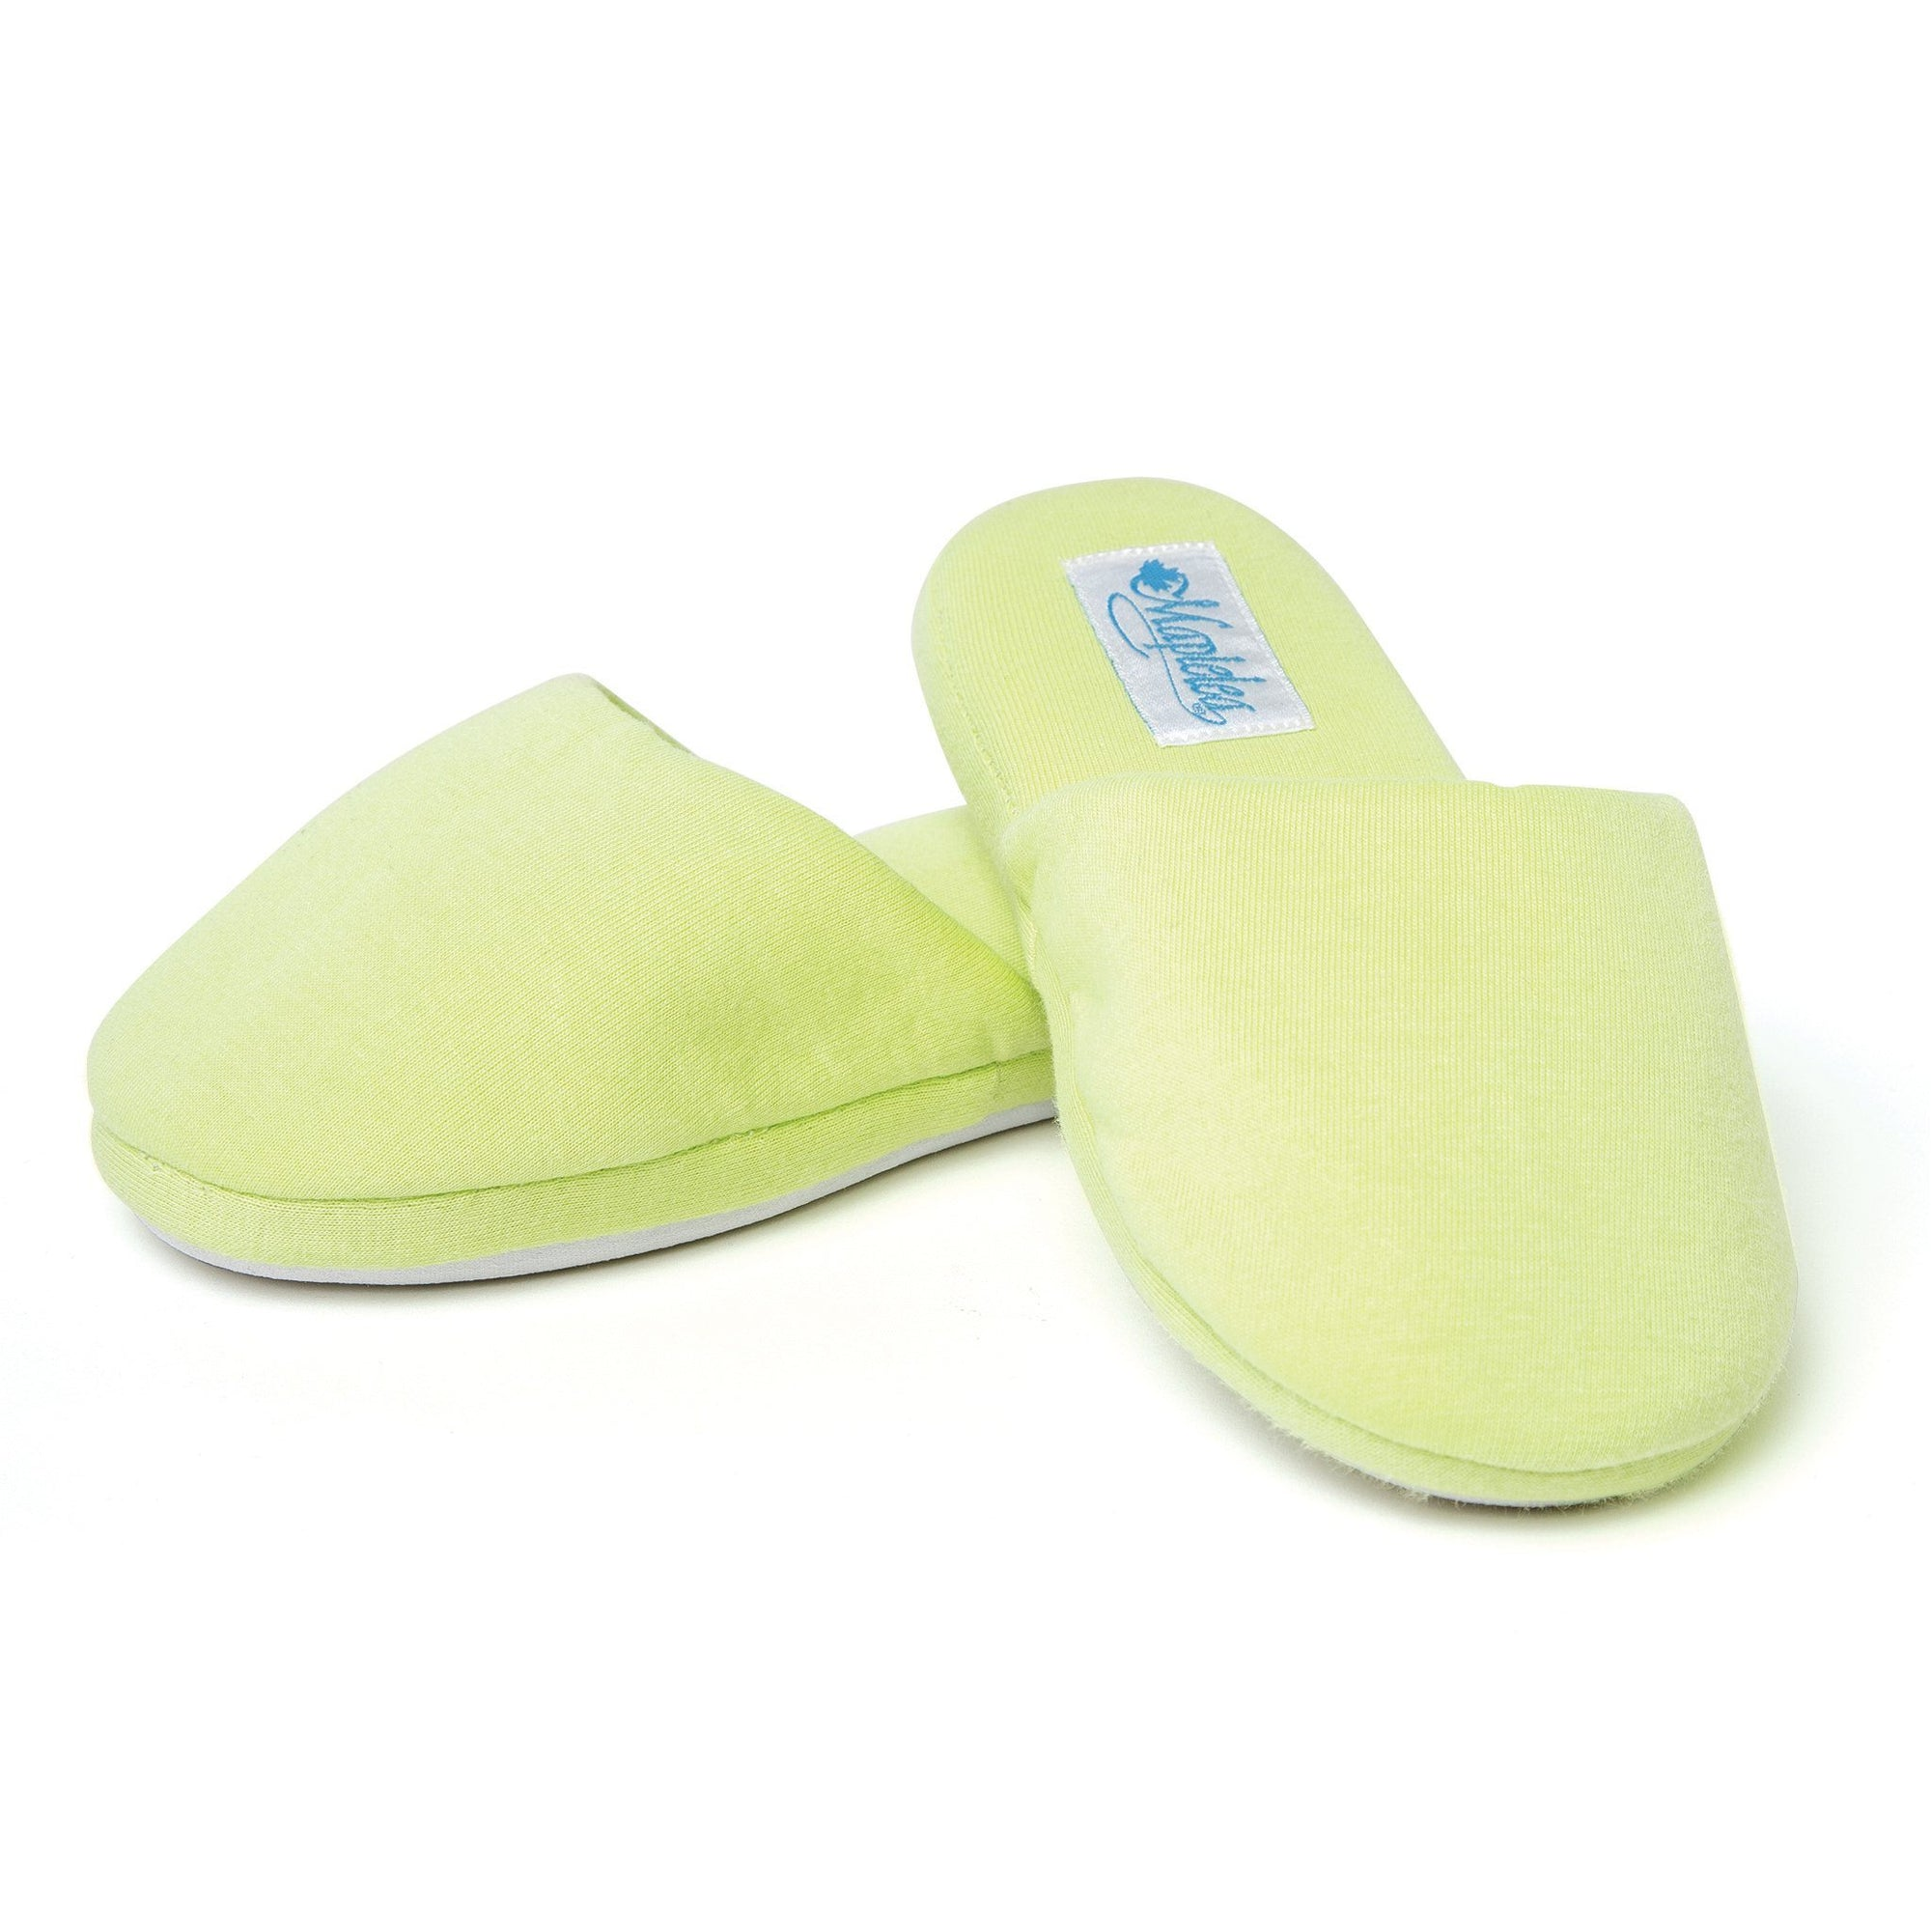 Second Slippers fuzzy plush green slippers for girls.